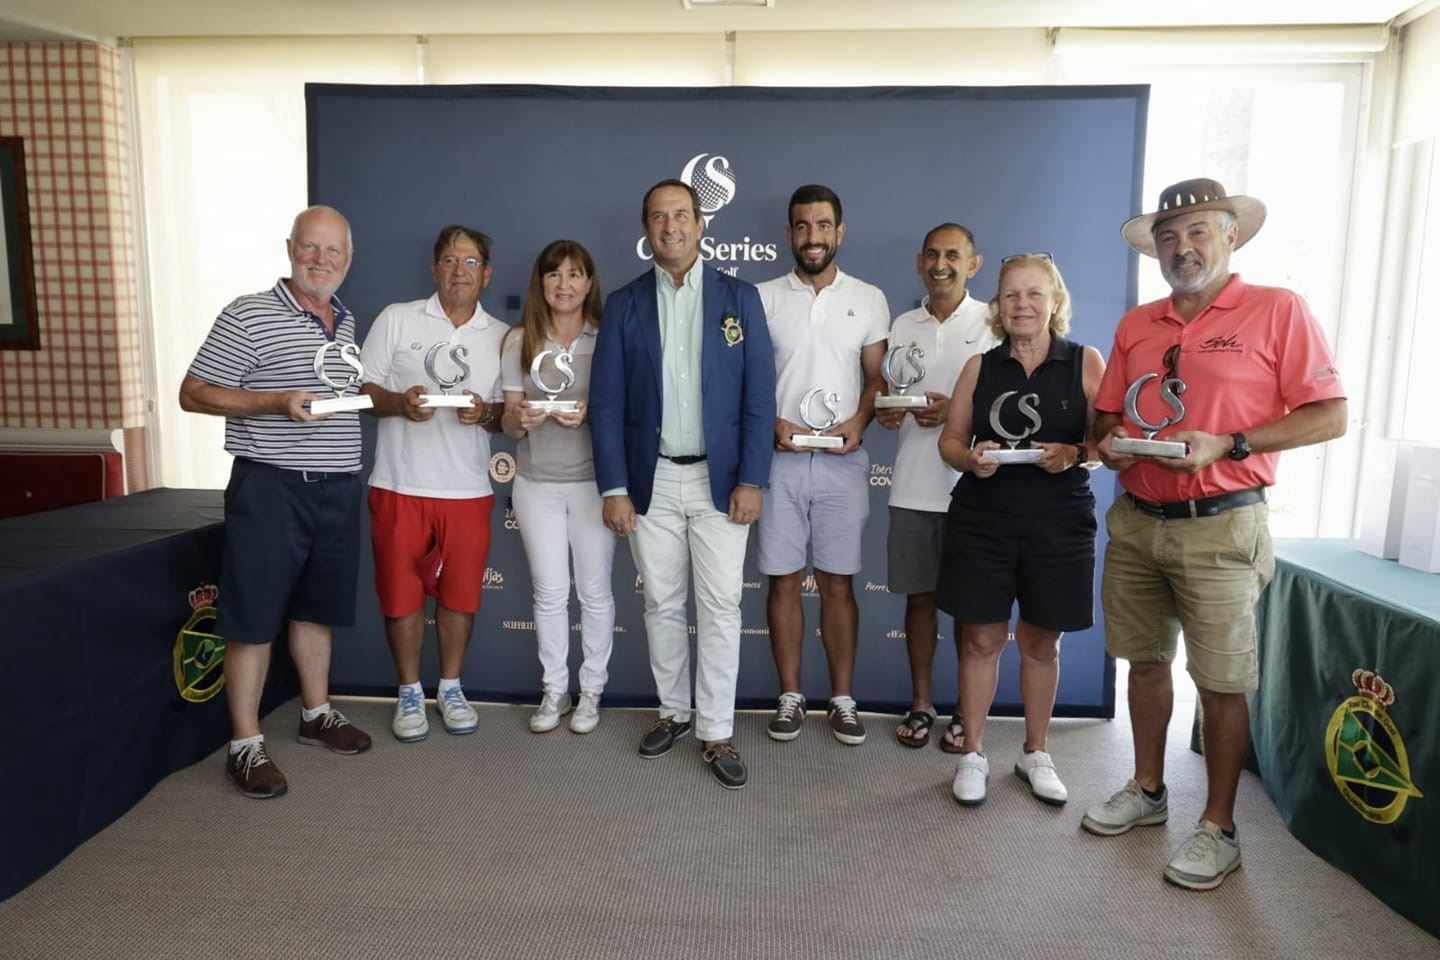 Club Series Golf landed in Guadalmina for the dispute of the 3rd tournament of its circuit